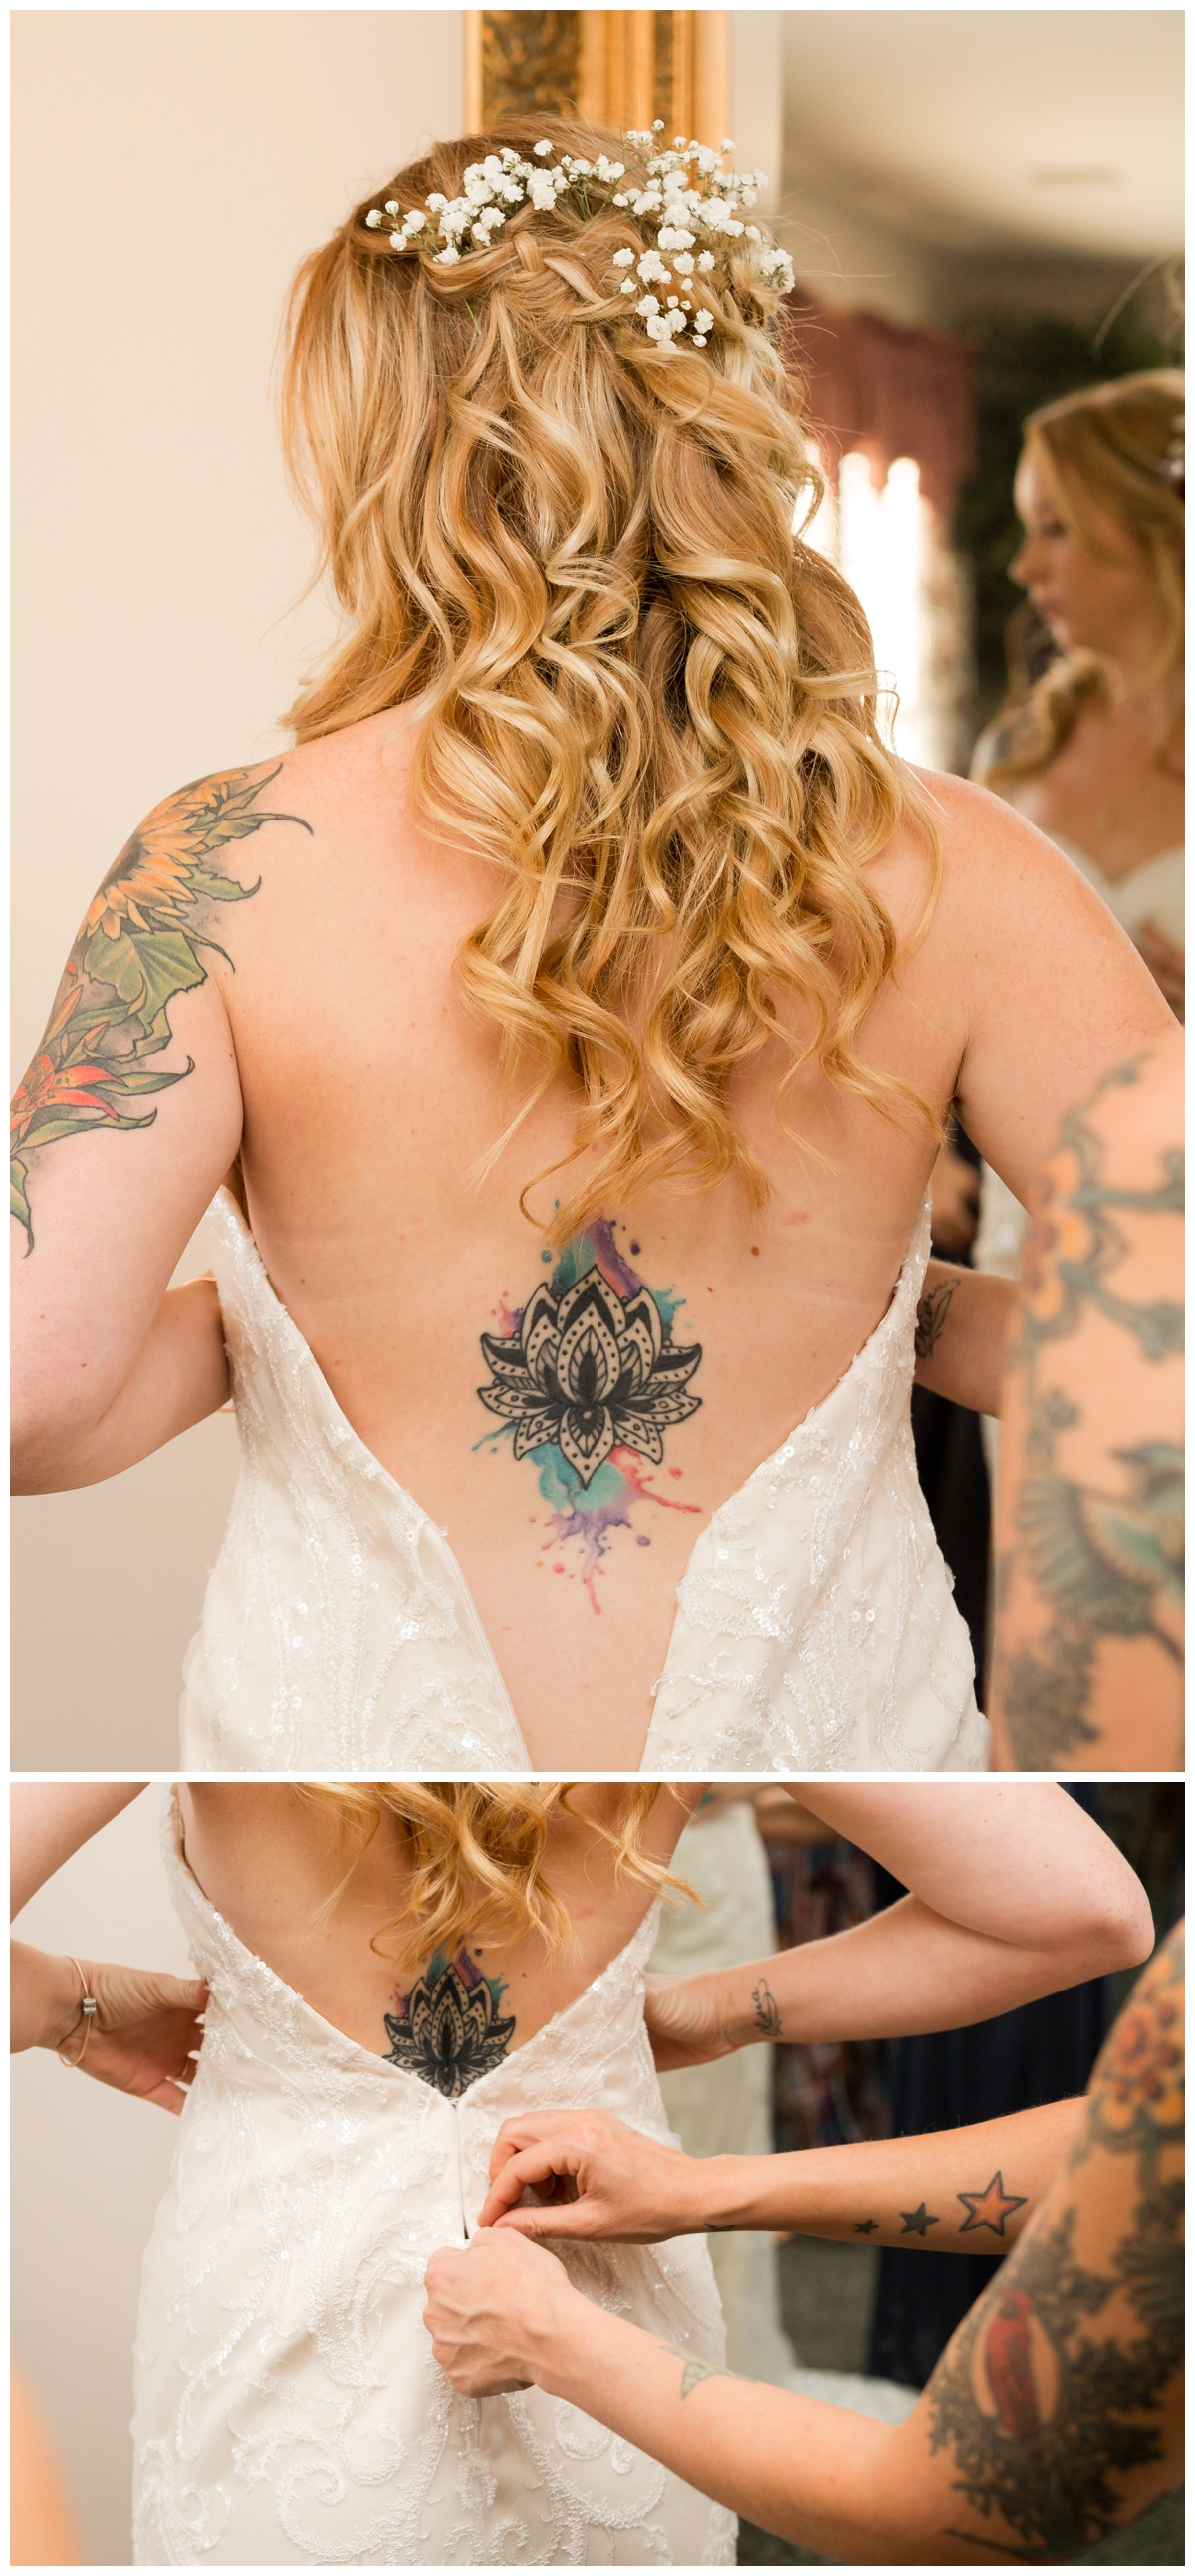 Bride with tattoos getting into her gown on her wedding day